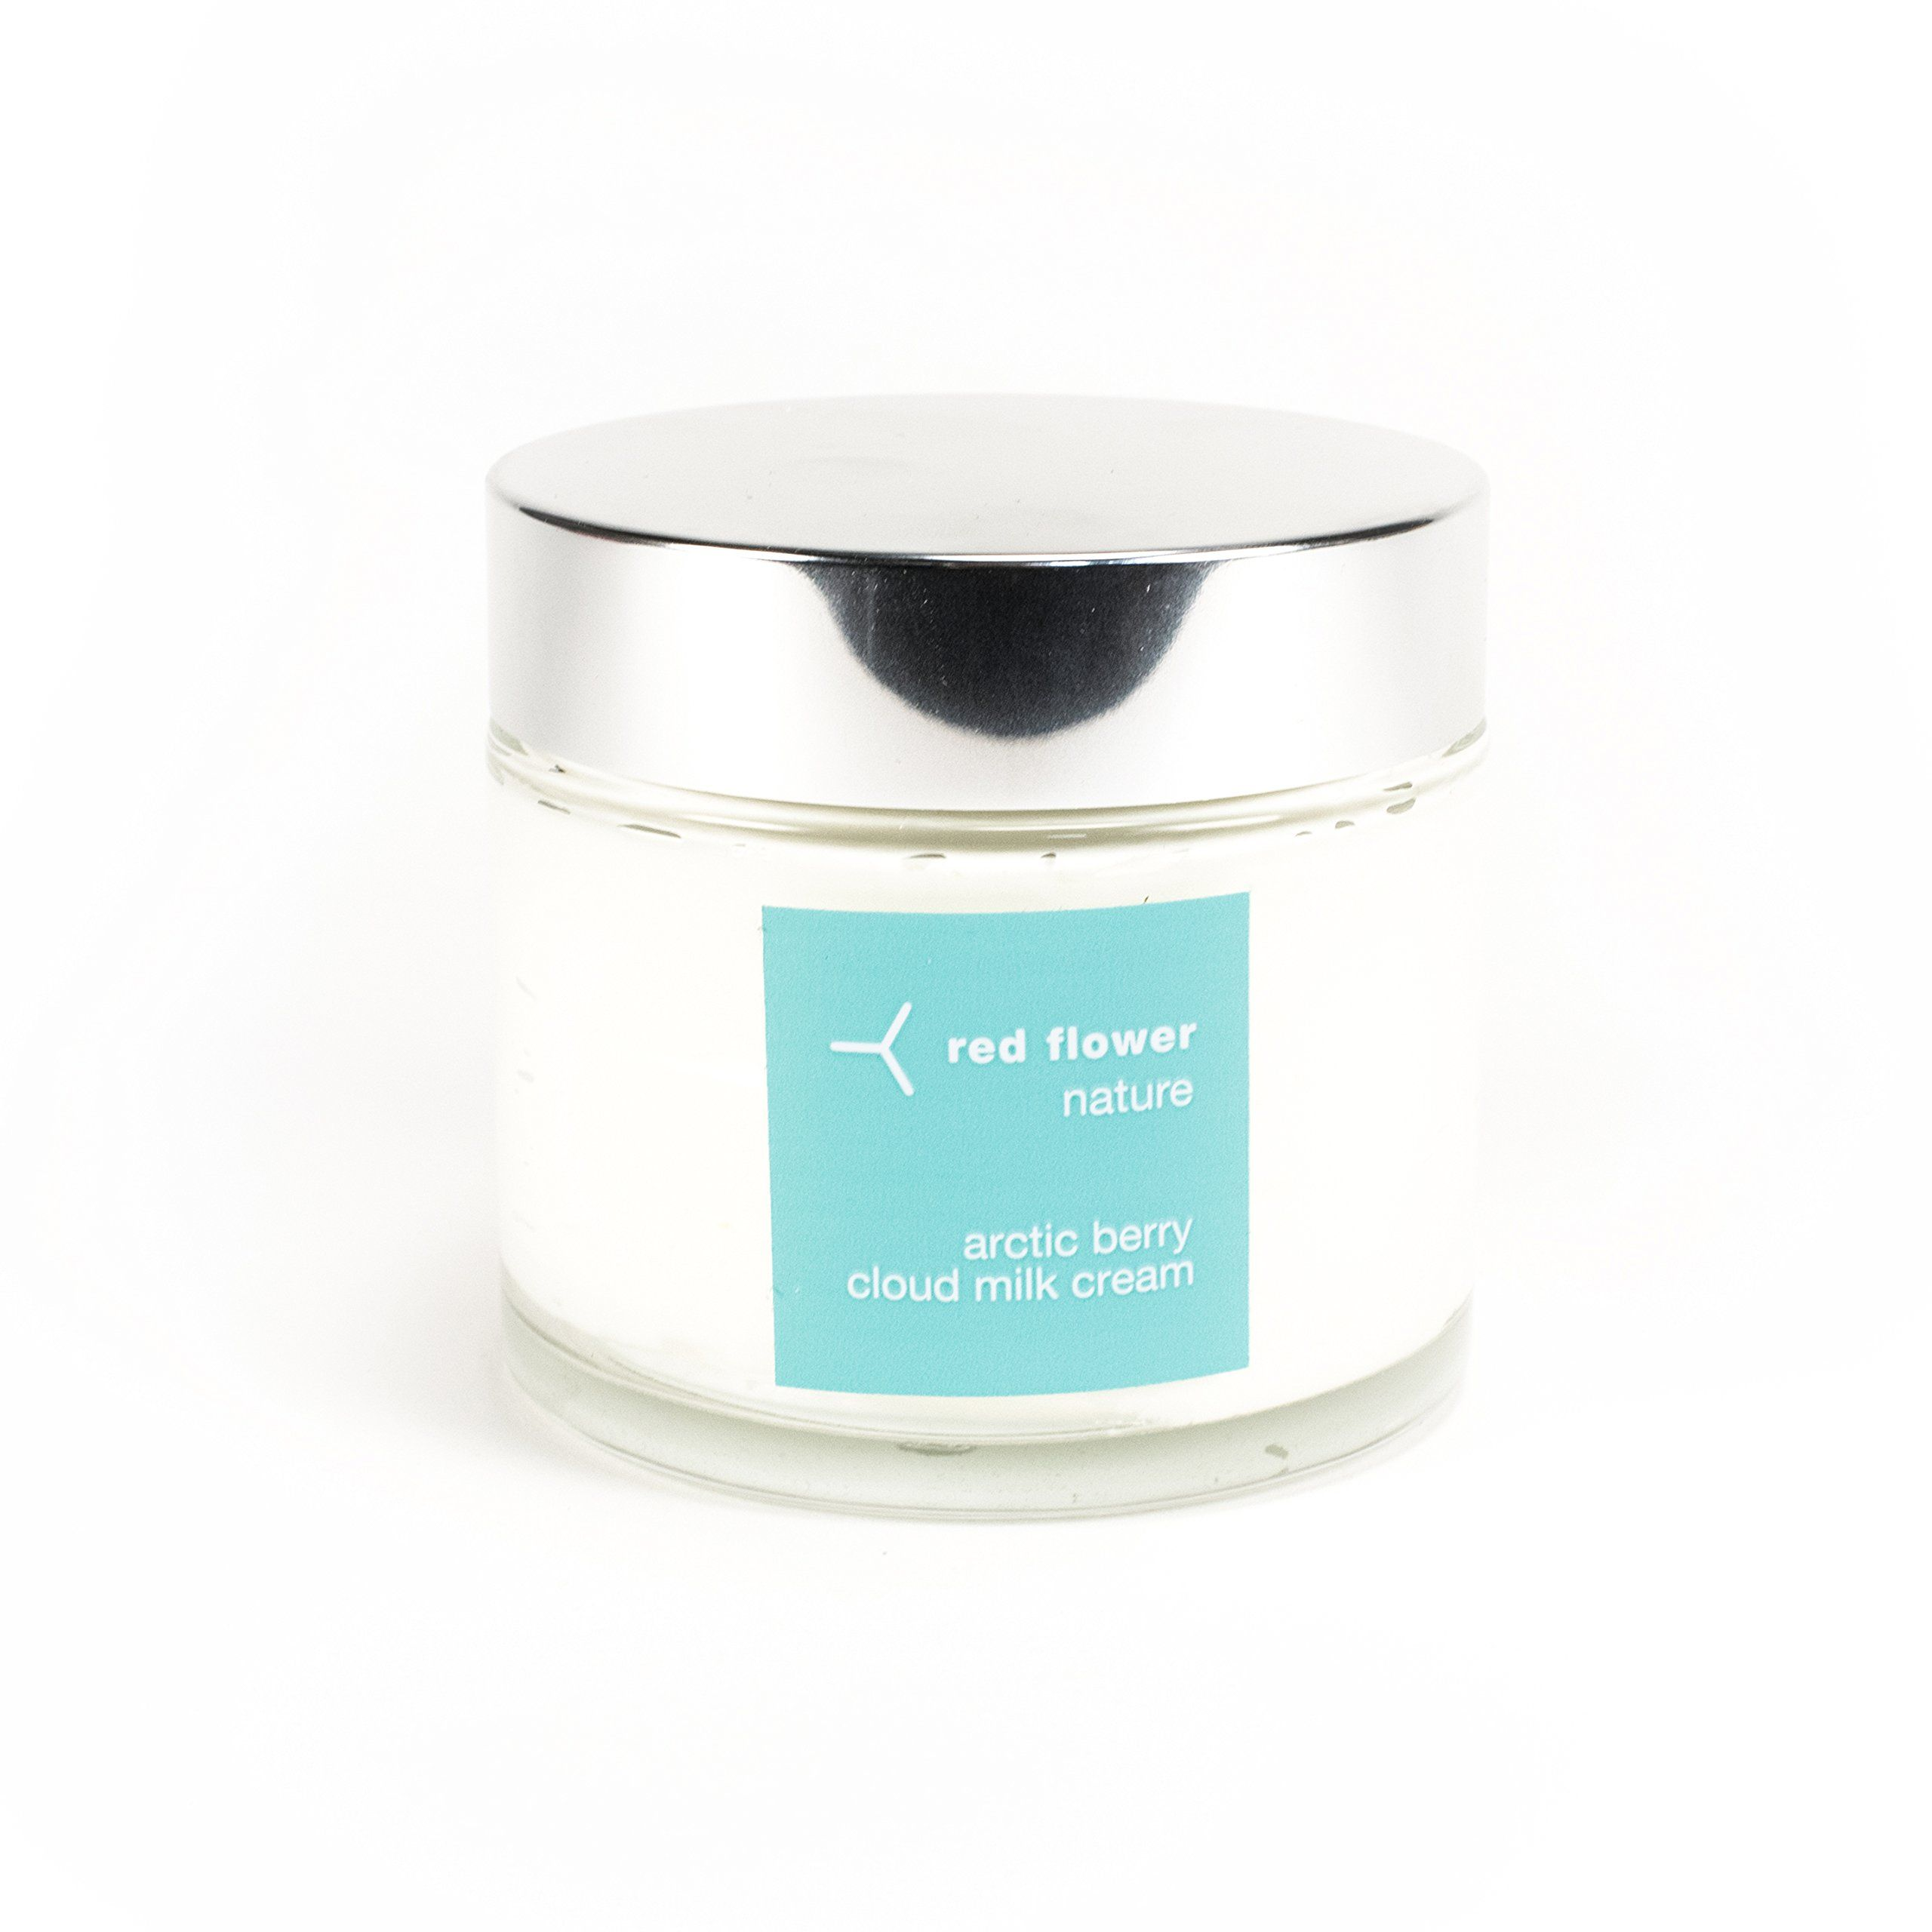 Red Flower Arctic Berry Cloud Milk Cream 7.4 oz Want to